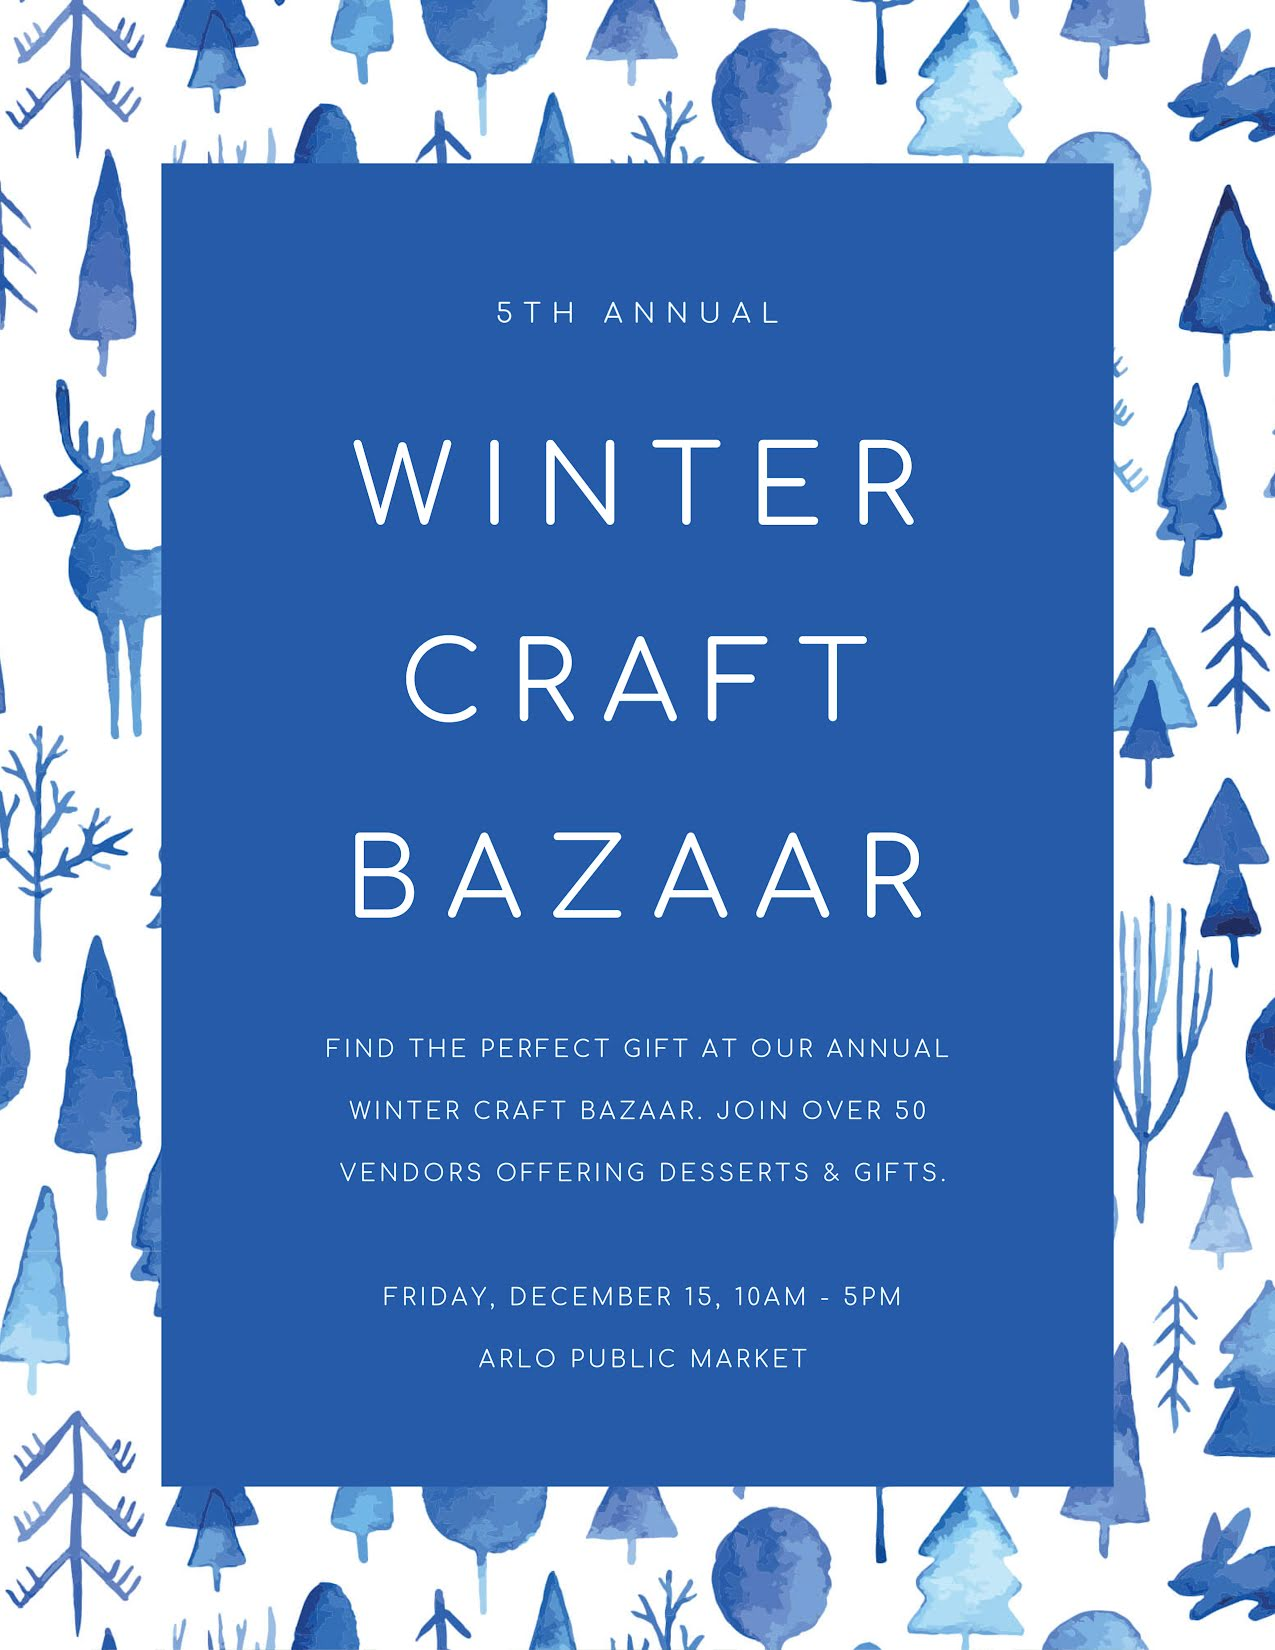 Winter Craft Bazaar - Flyer Template